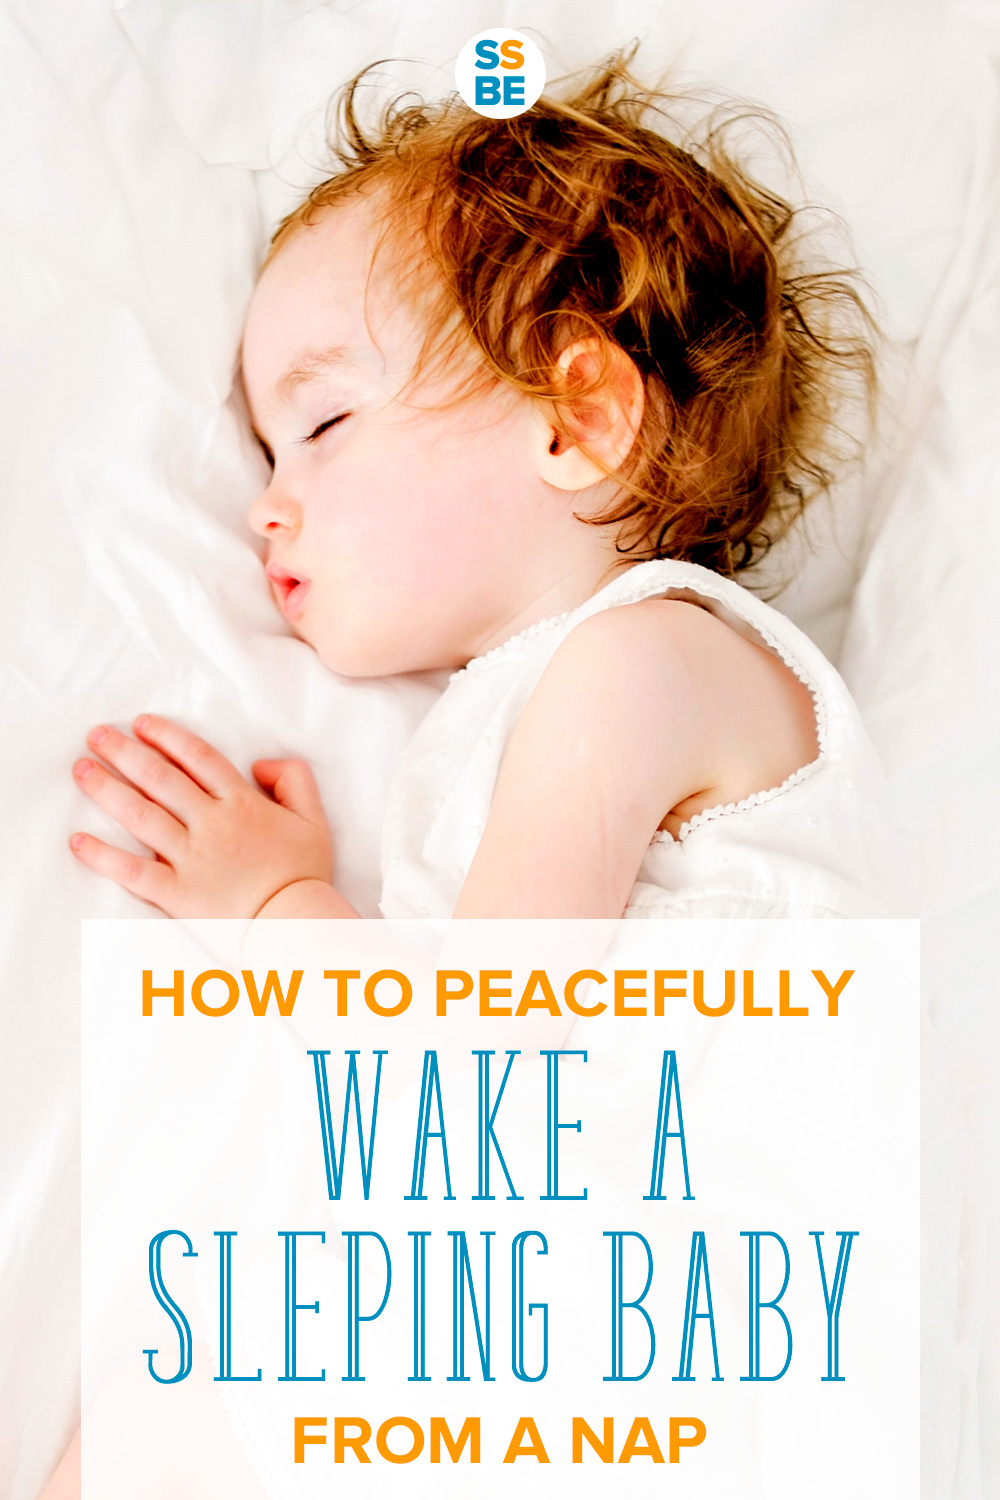 If you've ever had to wake a sleeping baby or toddler from a nap, this post is for you. Here's how to wake a sleeping baby or toddler peacefully.